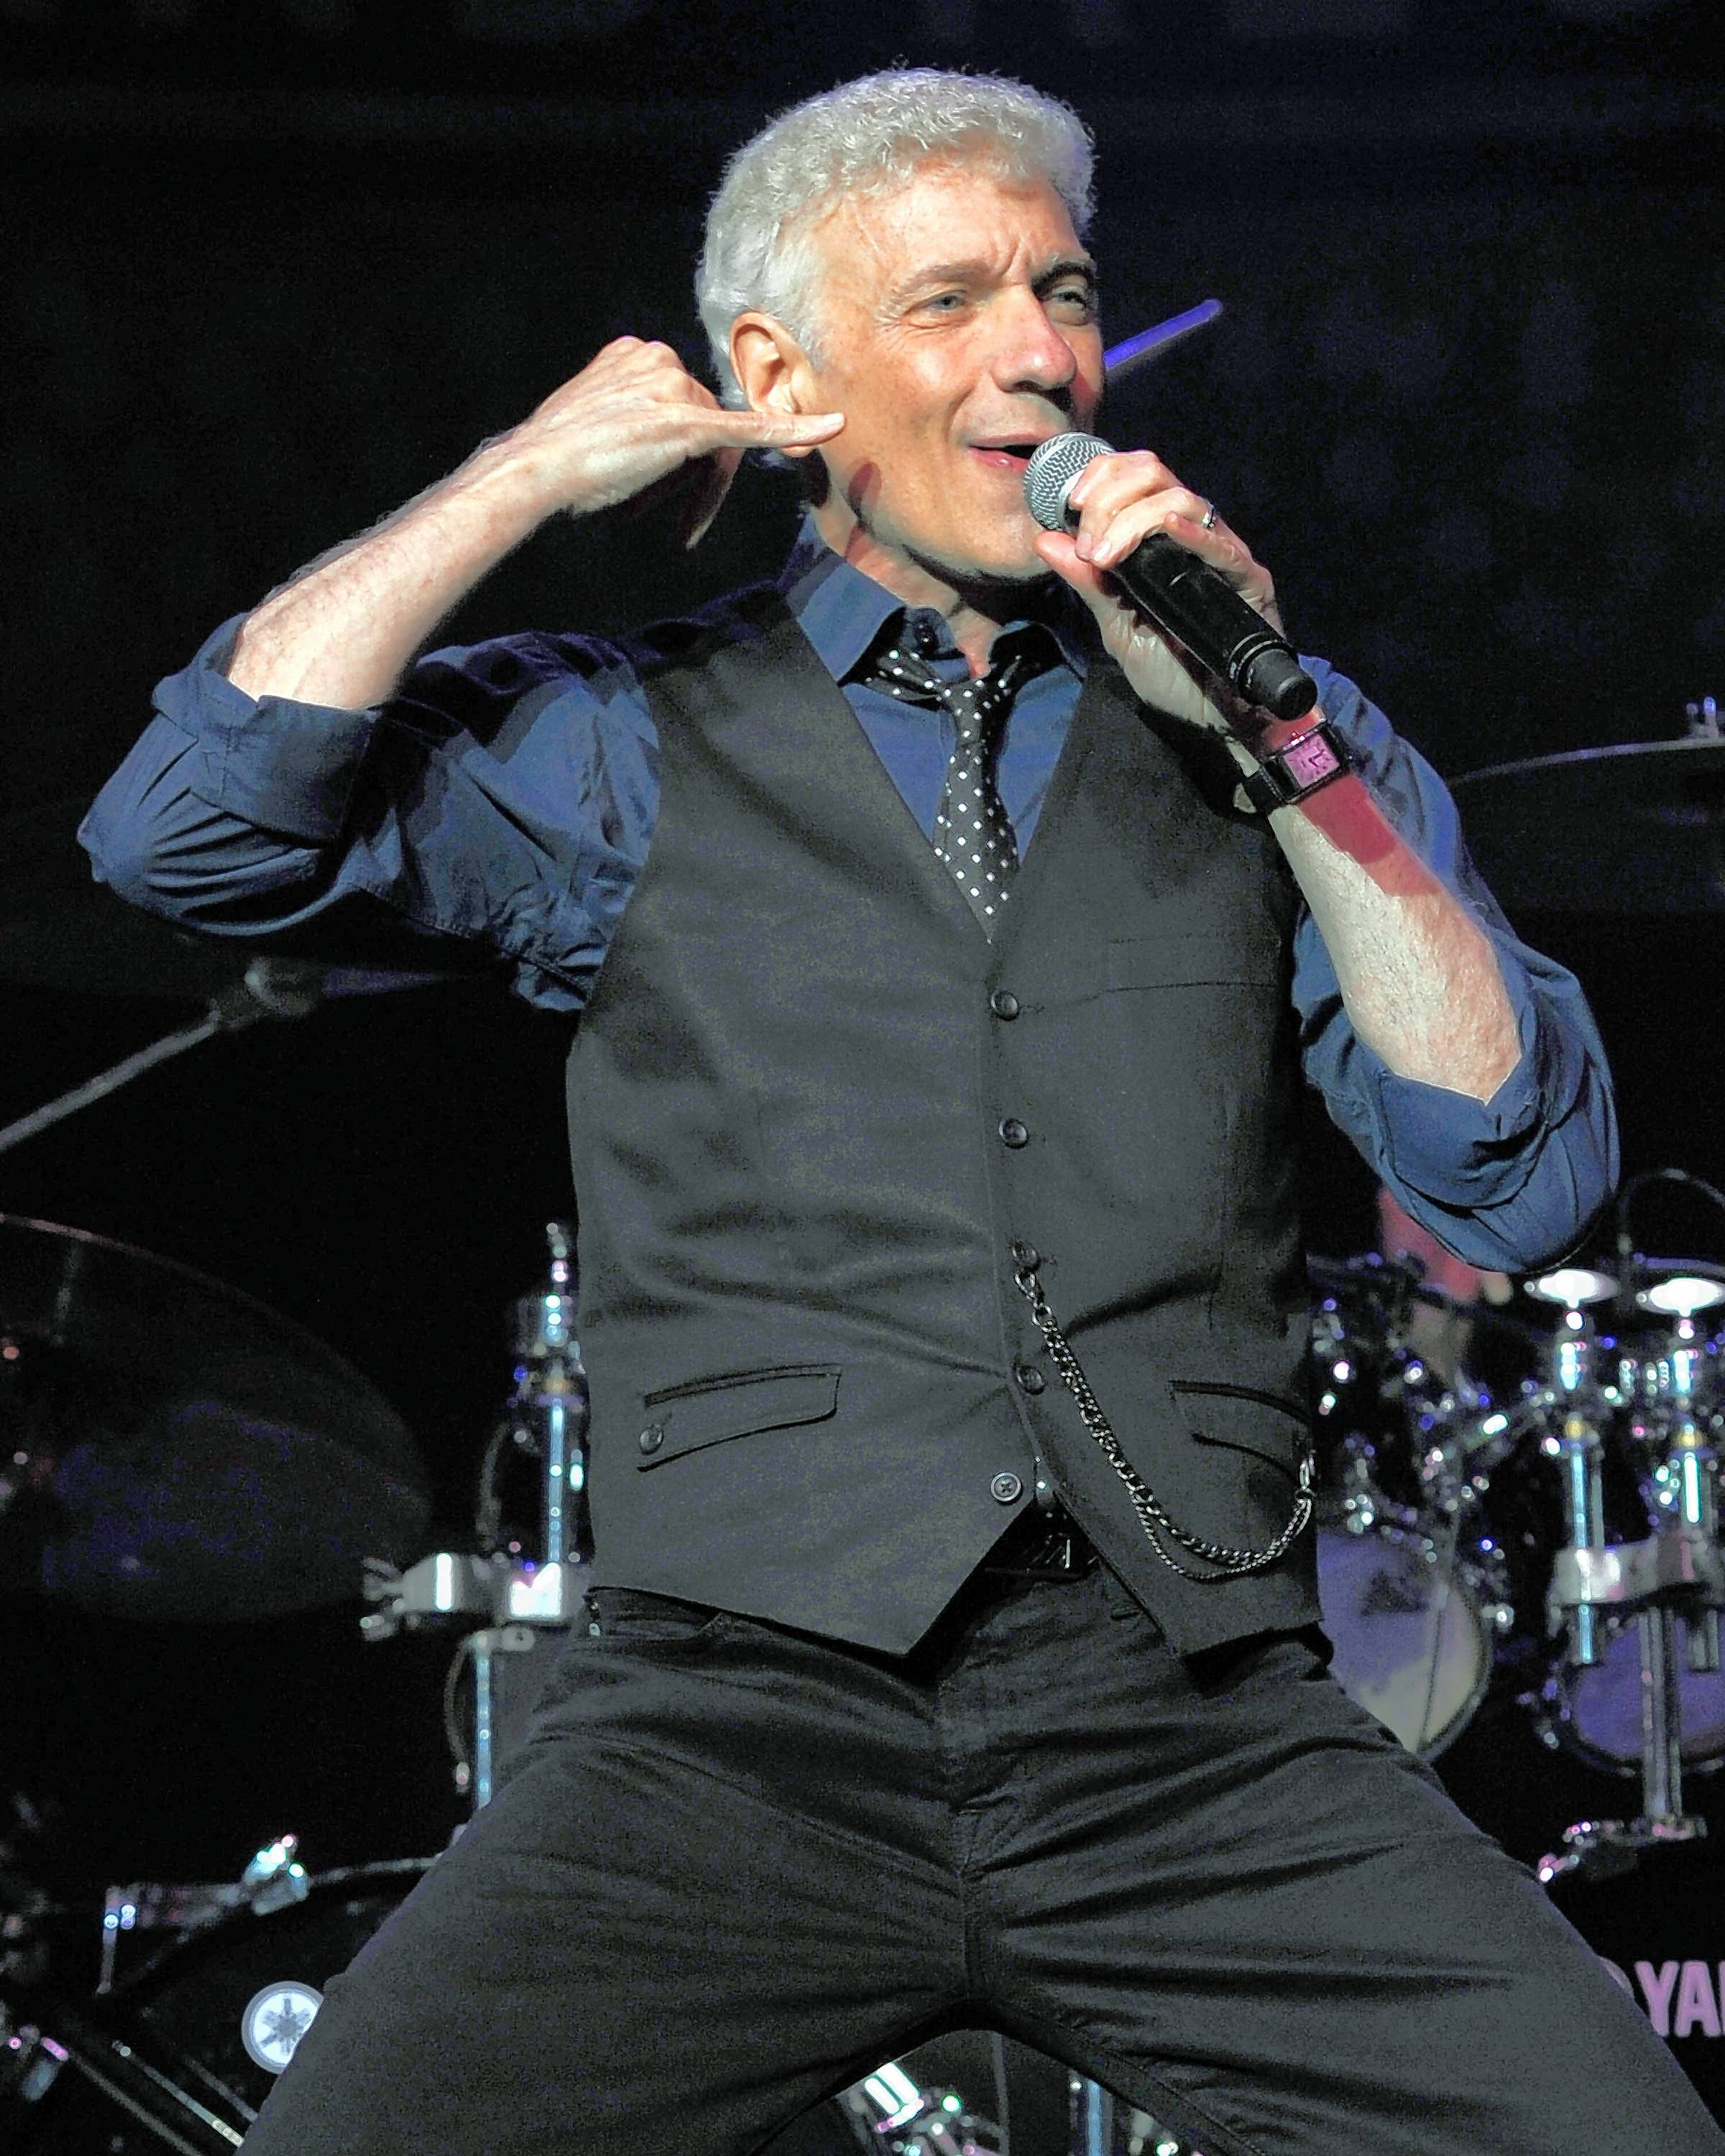 Dennis DeYoung, a founding member of the band Styx, performs at the Genesee Theatre in Waukegan on Saturday, Feb. 10.